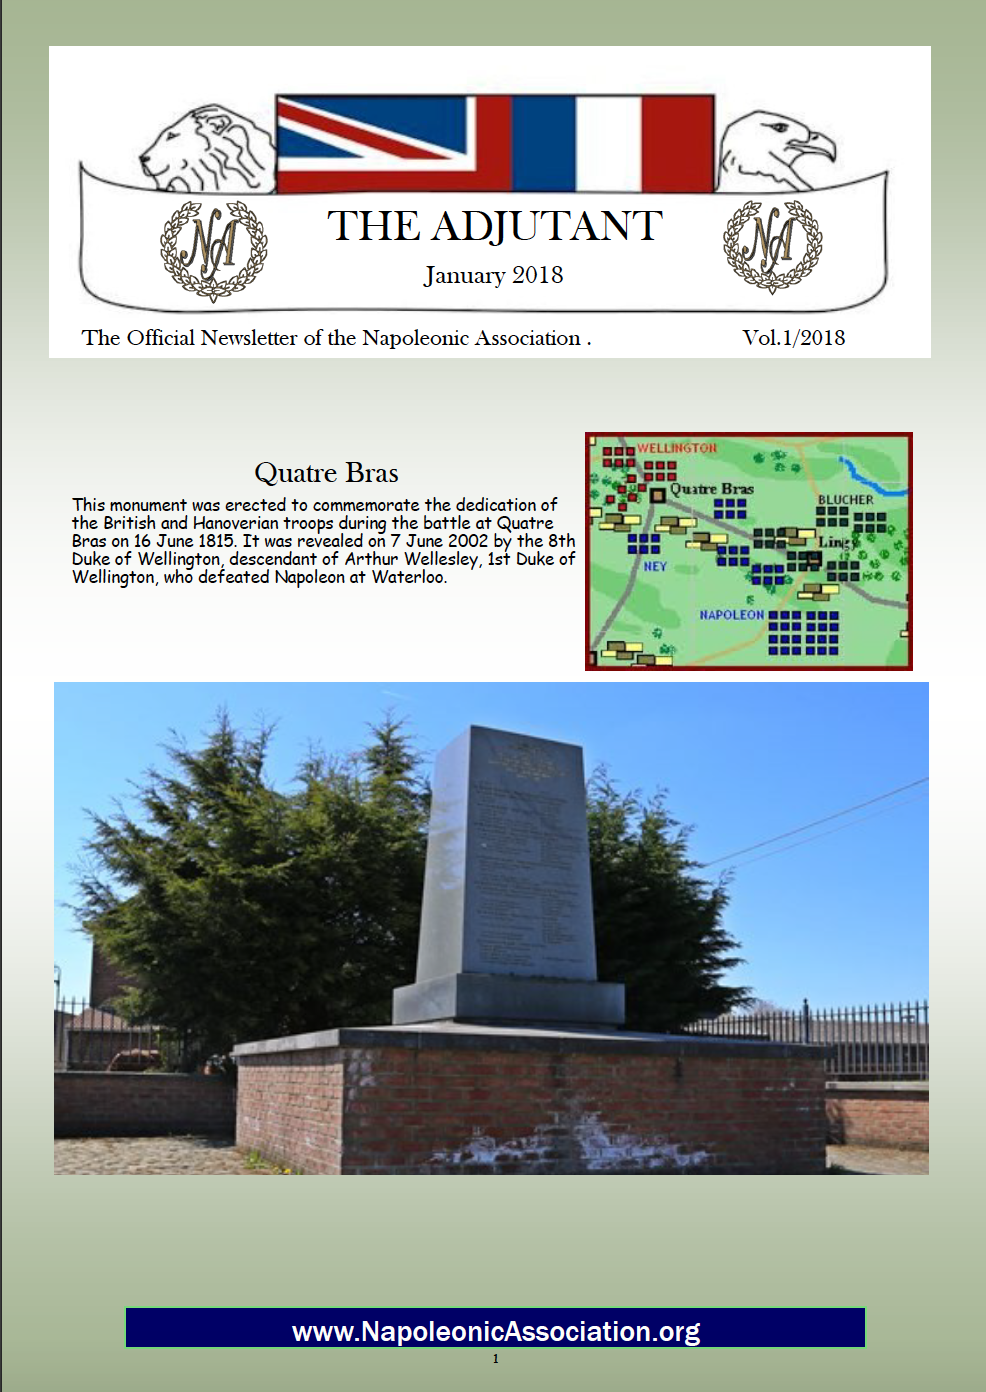 The Adjutant (Winter 2017)